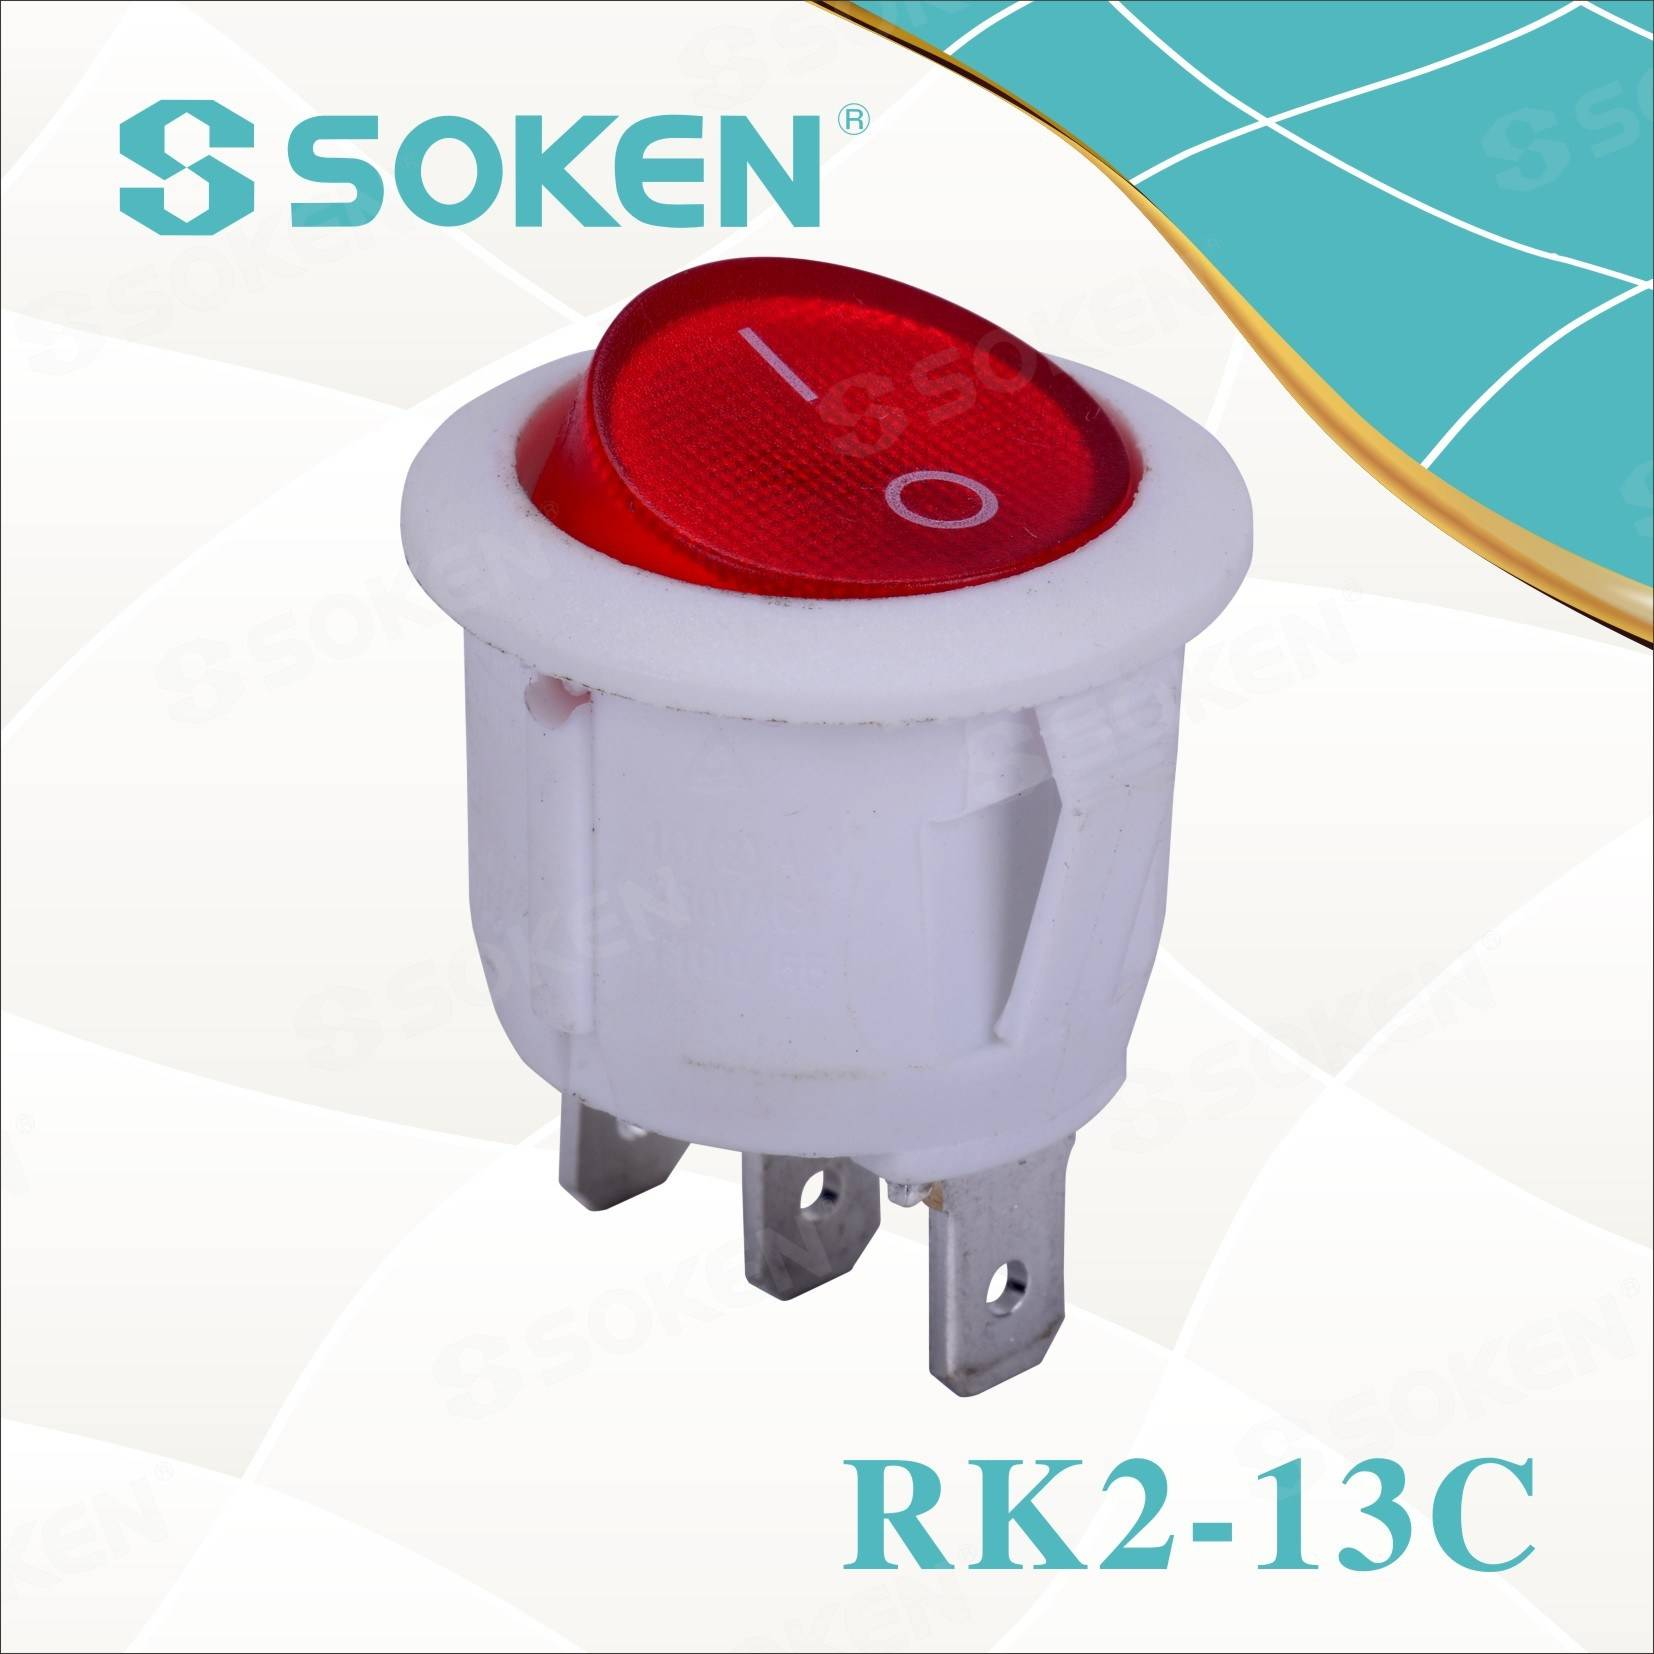 Rownd Rk2-13c Soken ar Switch Rocker off